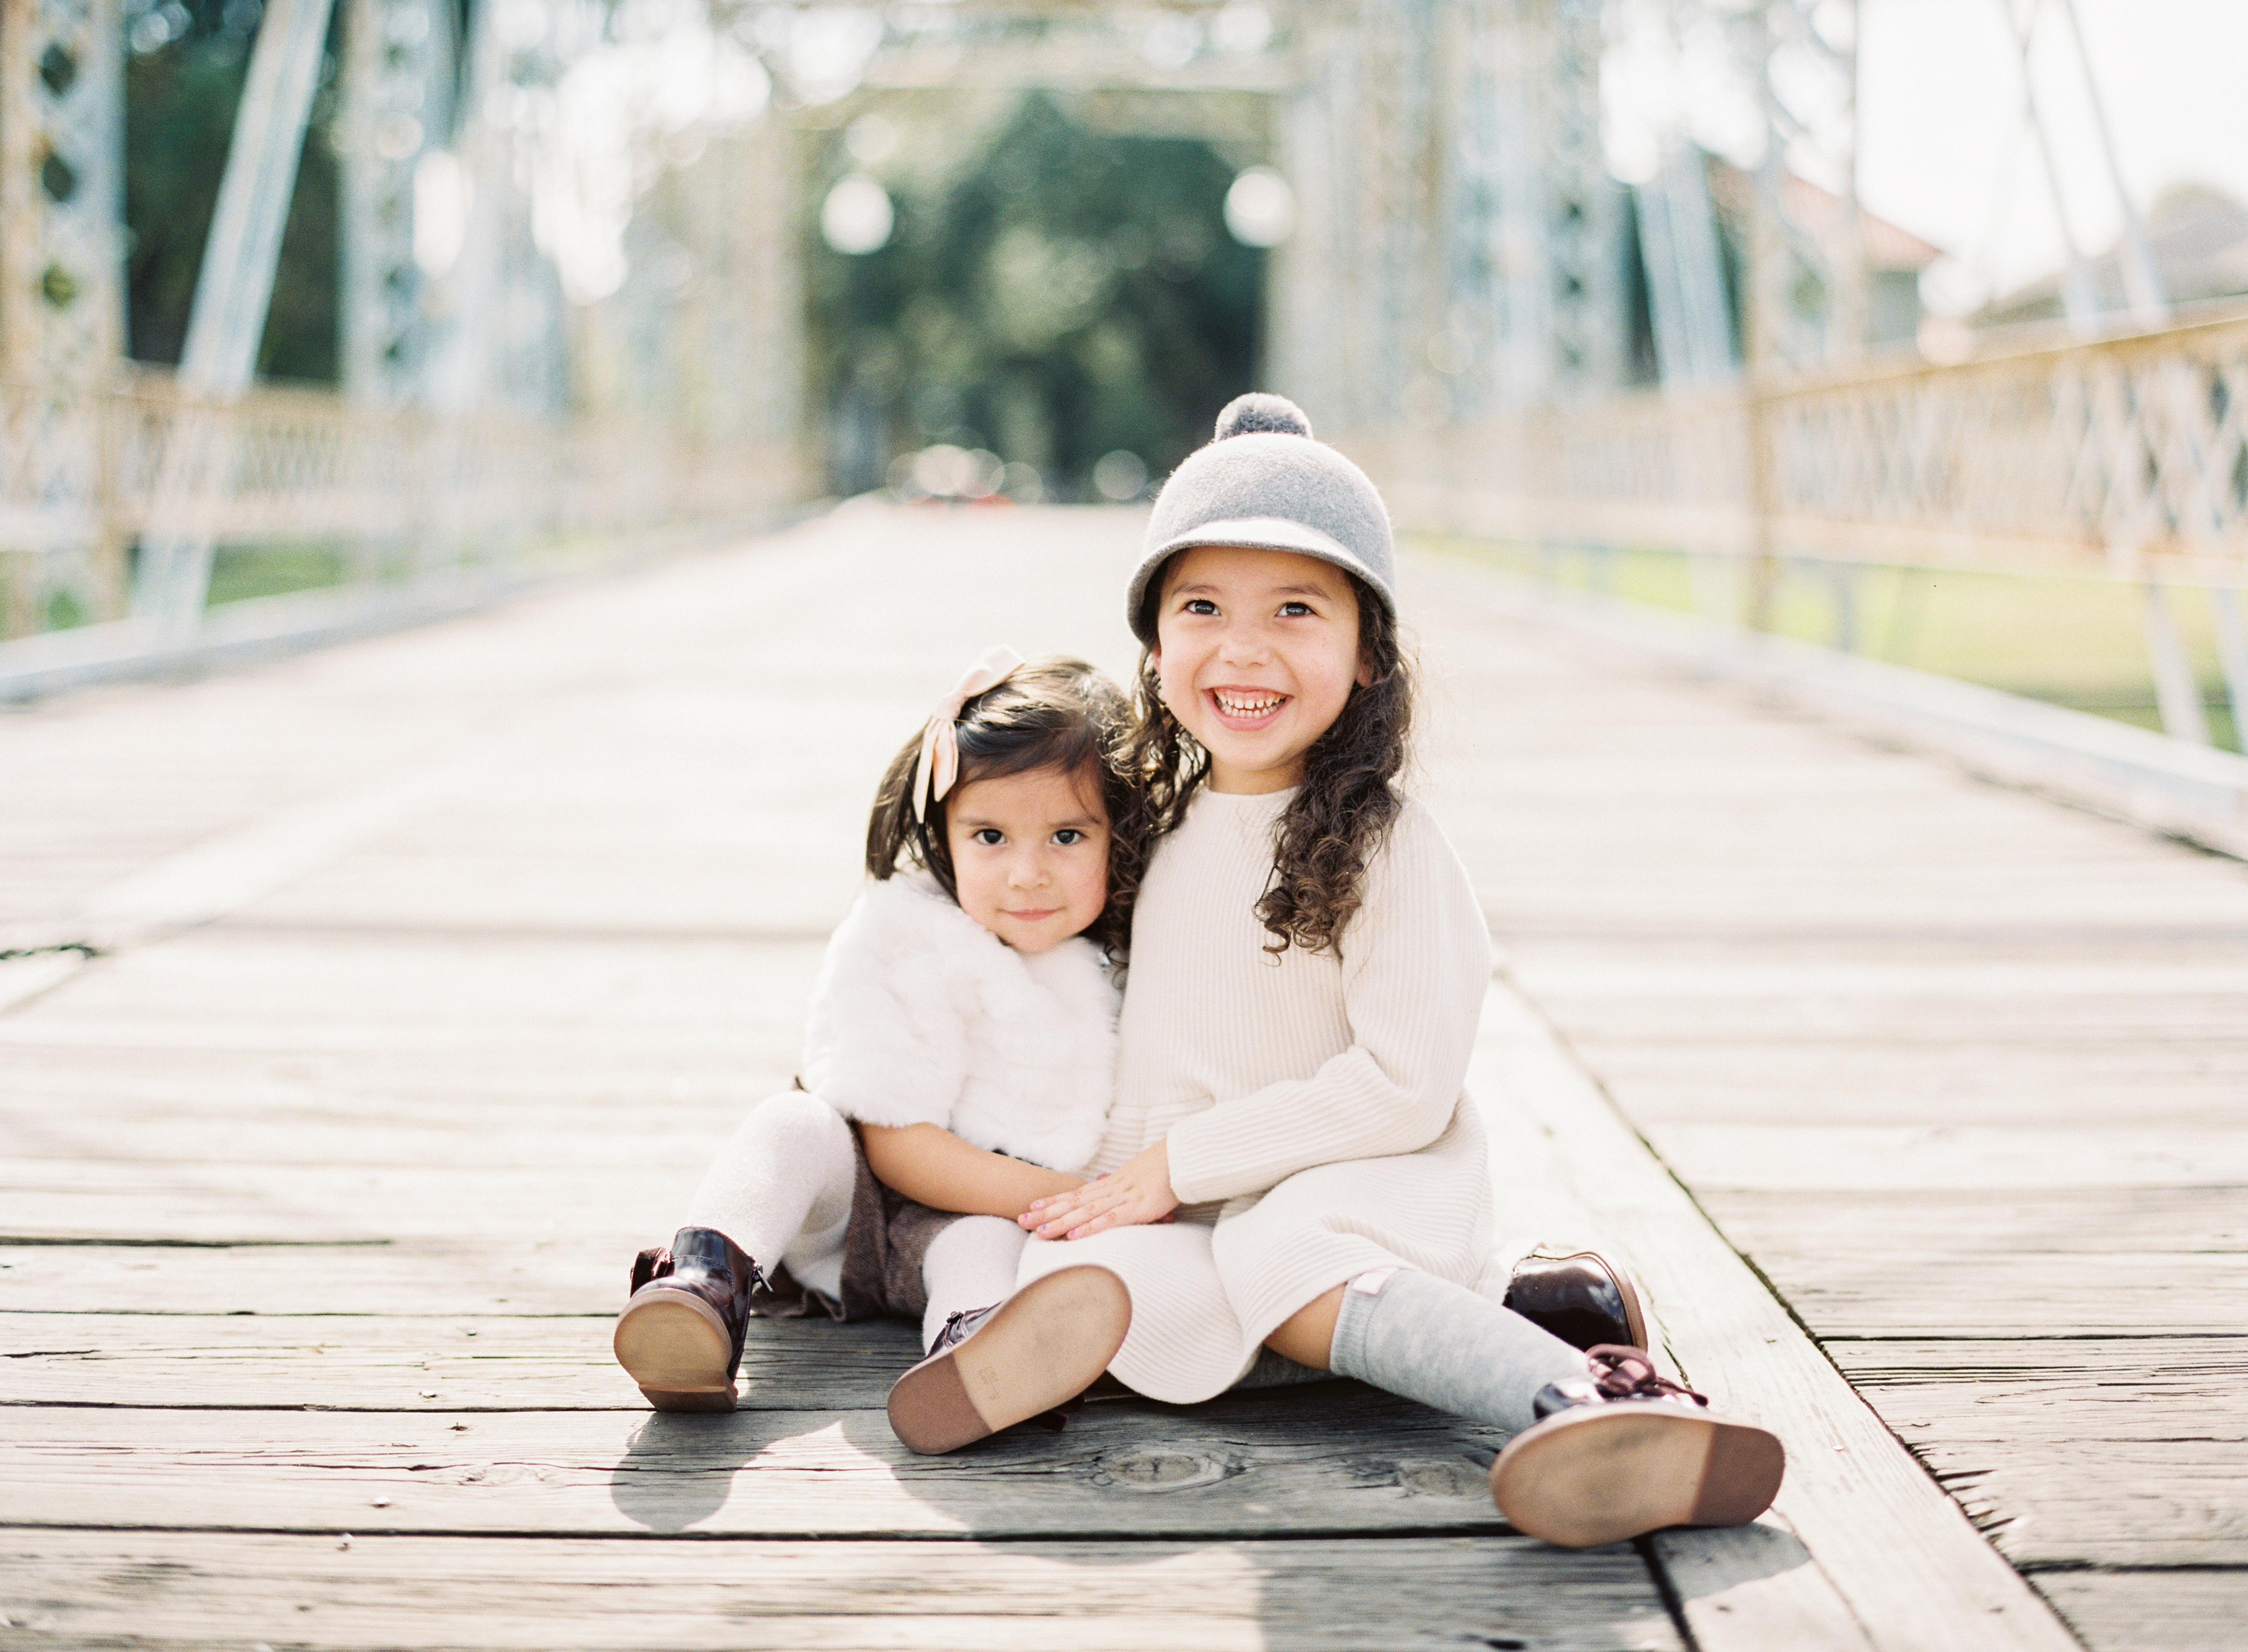 poses, what to wear, outdoor, ideas, with toddler, park, sisters, fashion, style